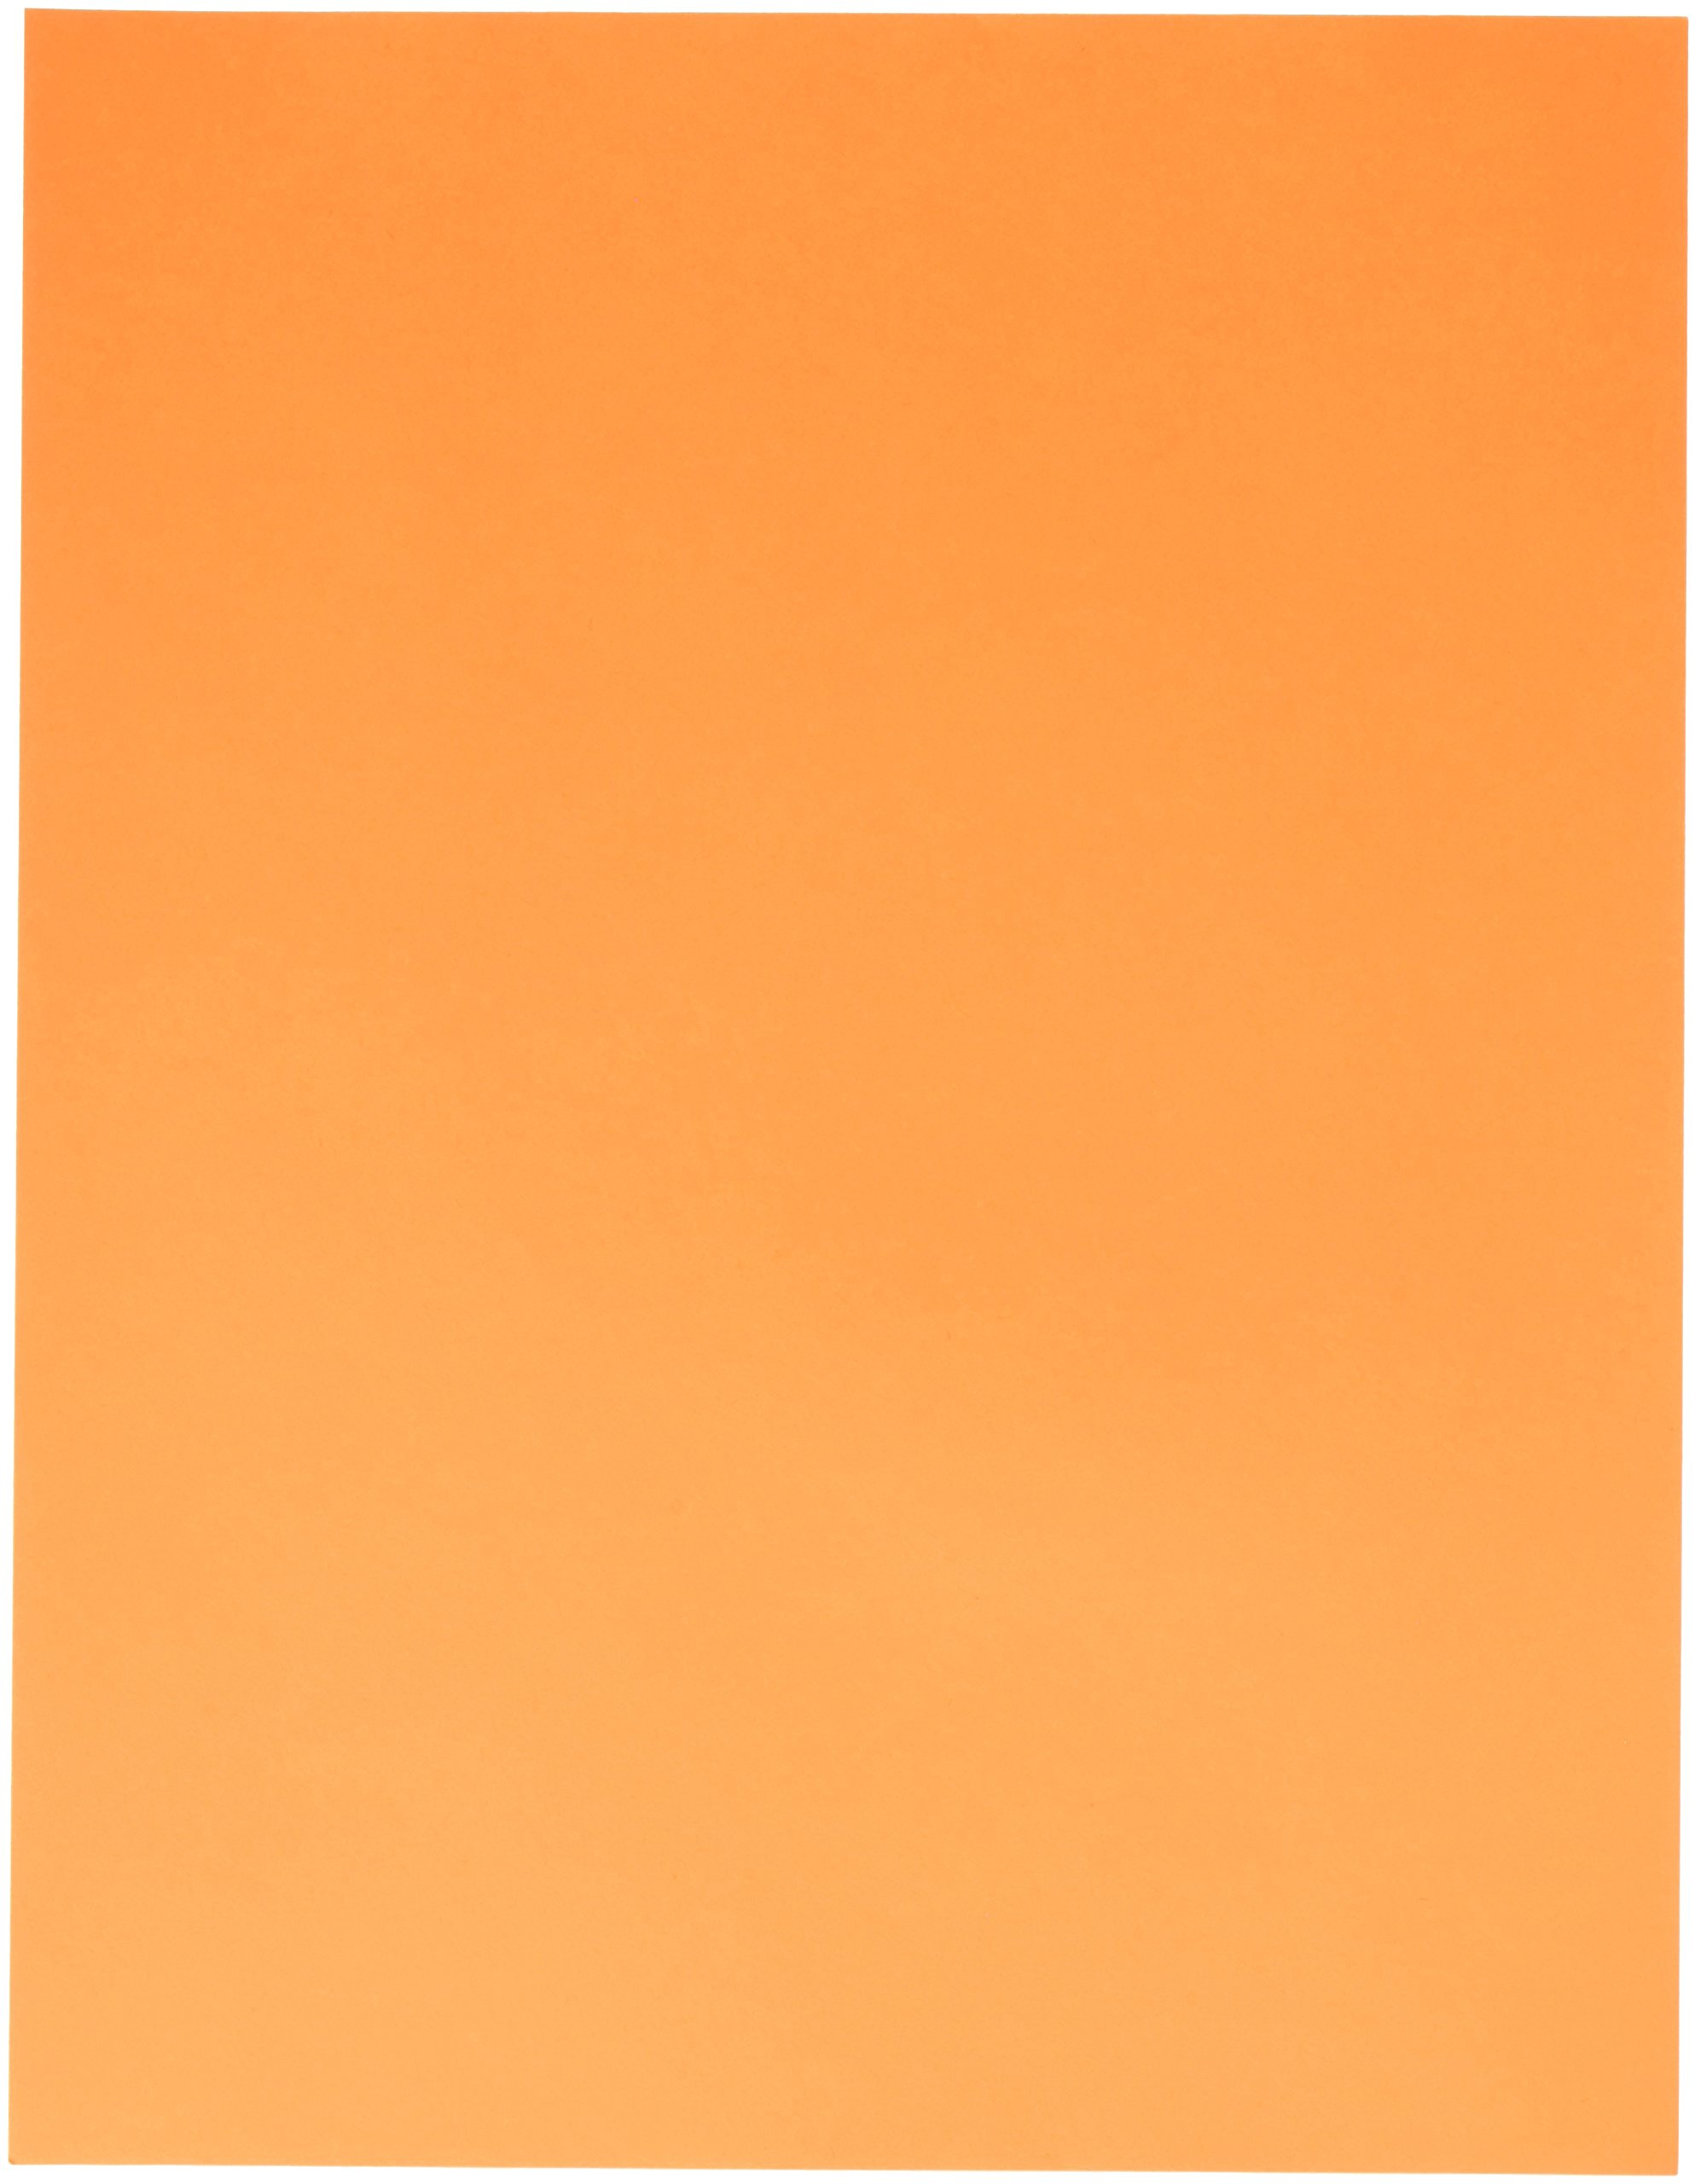 Exact 26721 Domtar Exact Color Copy Paper, 8-1/2'' x 11'' Size, 20 lb, 2.25'' Height, 8.5'' Width, 11'' Length, Bright Orange (Pack of 500)